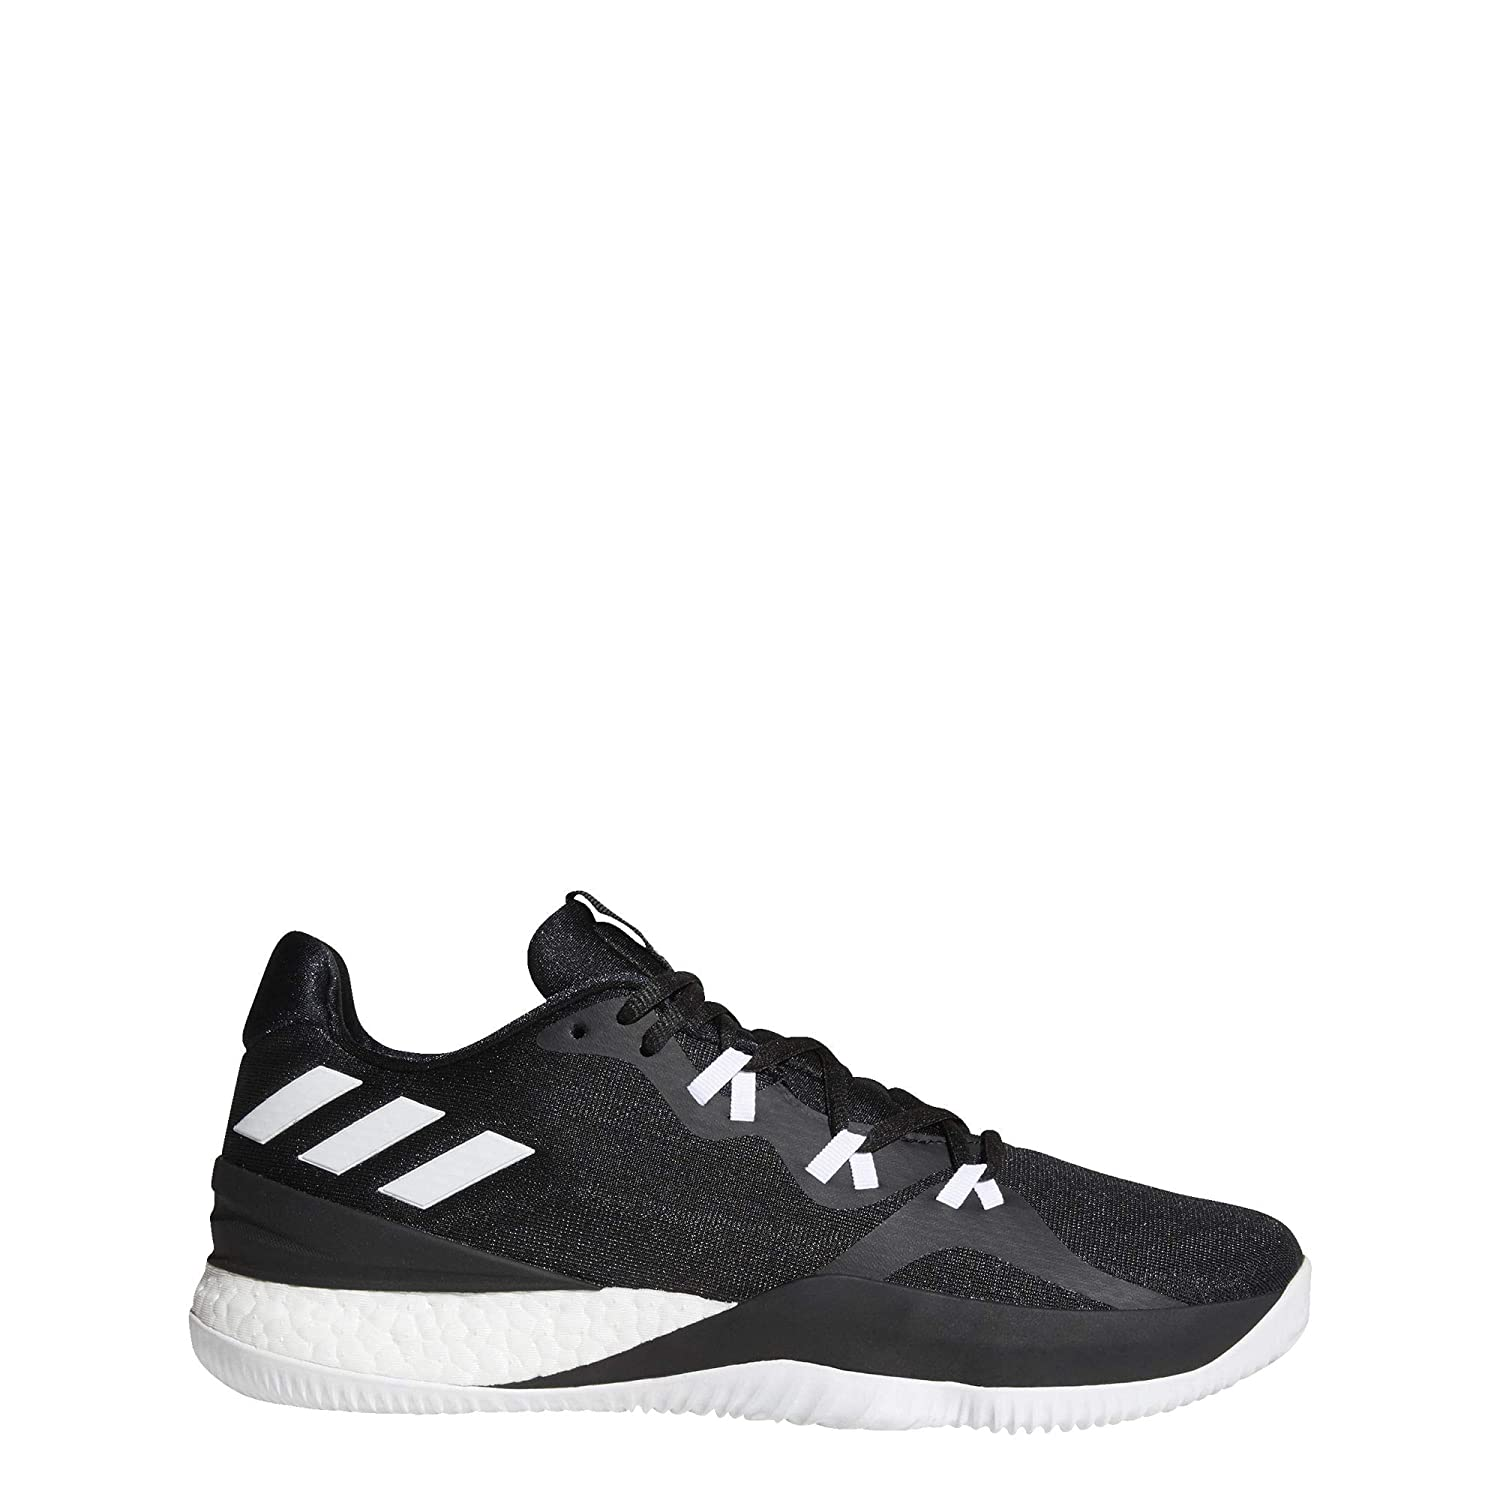 ec4fe8b60c056 adidas Crazylight Boost 2018 Shoes Men's